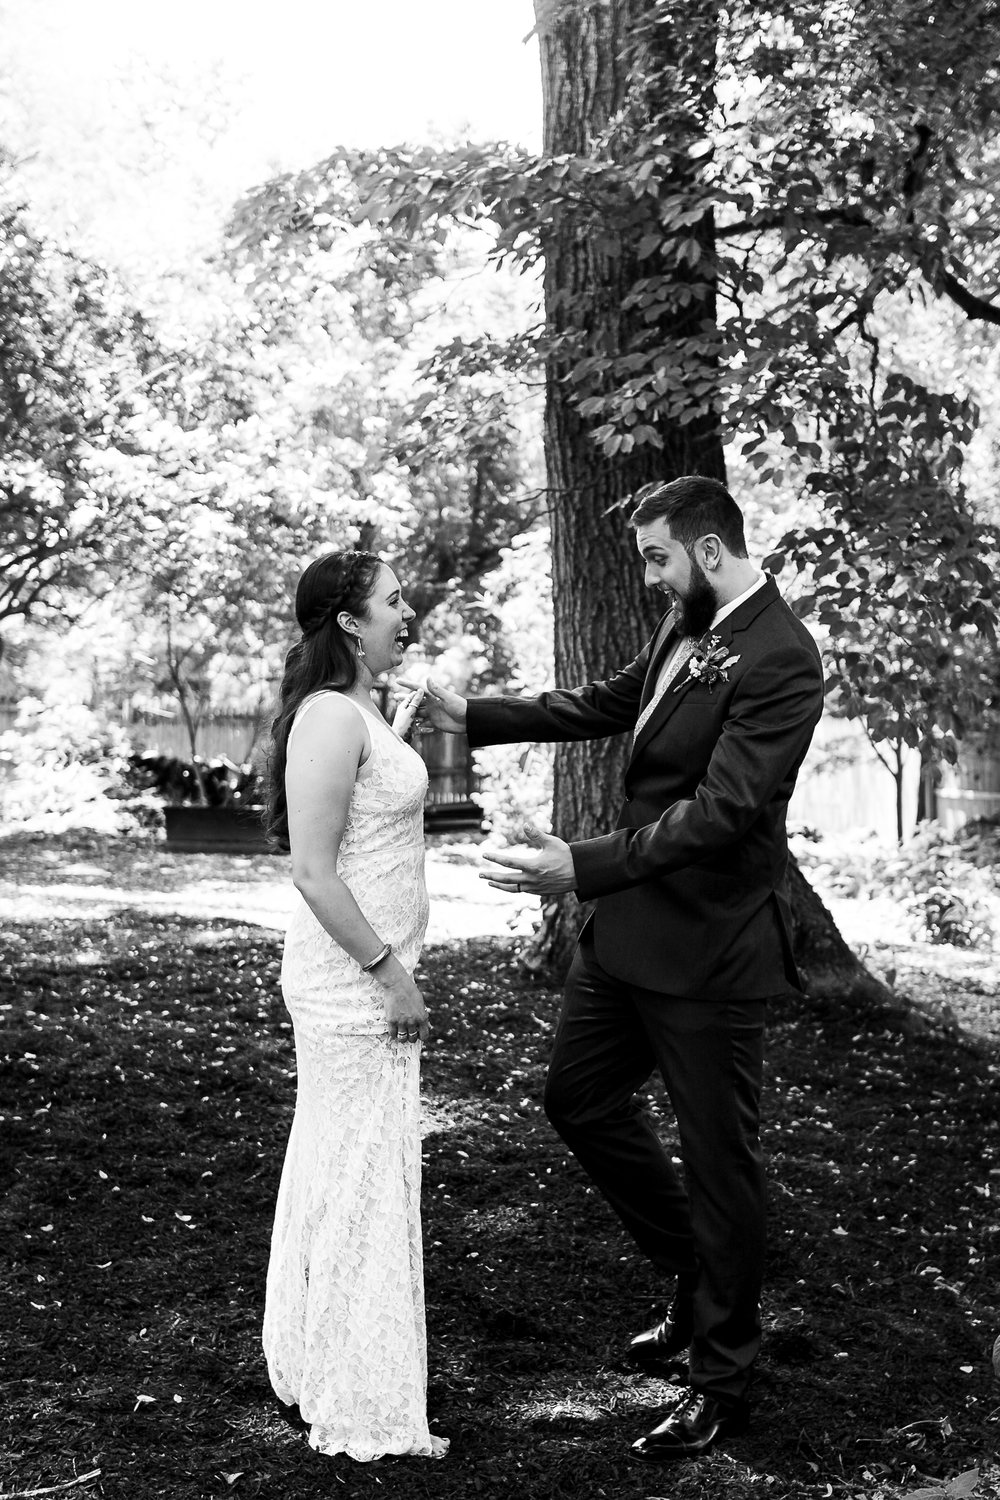 Shayna and Kyle Wedding-4.jpg